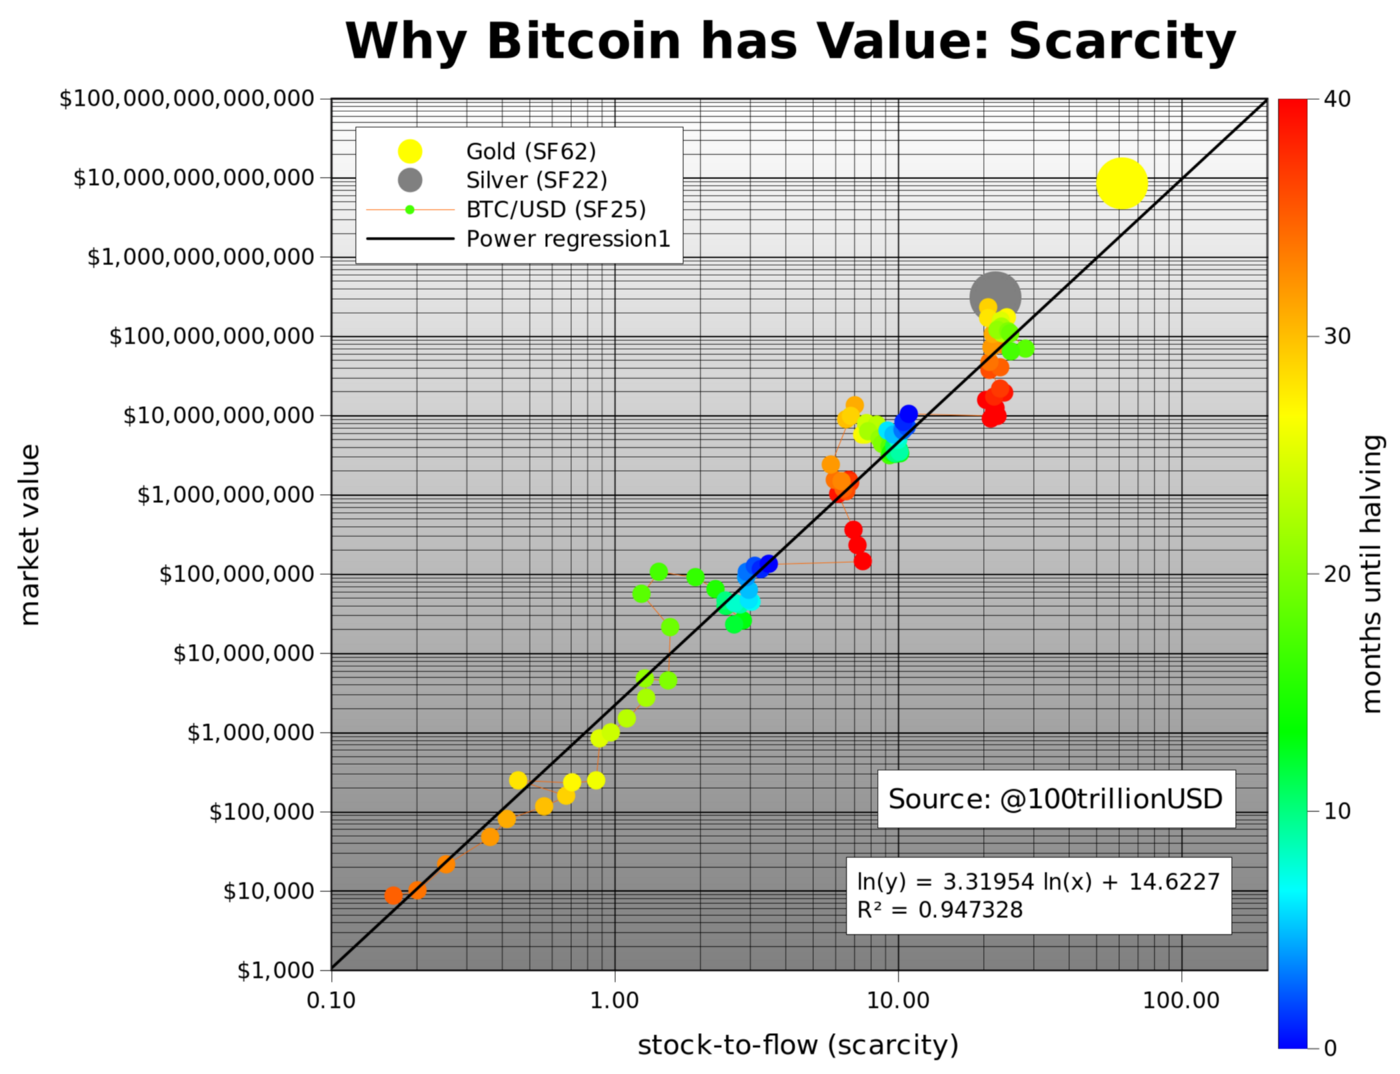 Source: Modeling Bitcoin Value with Scarcity